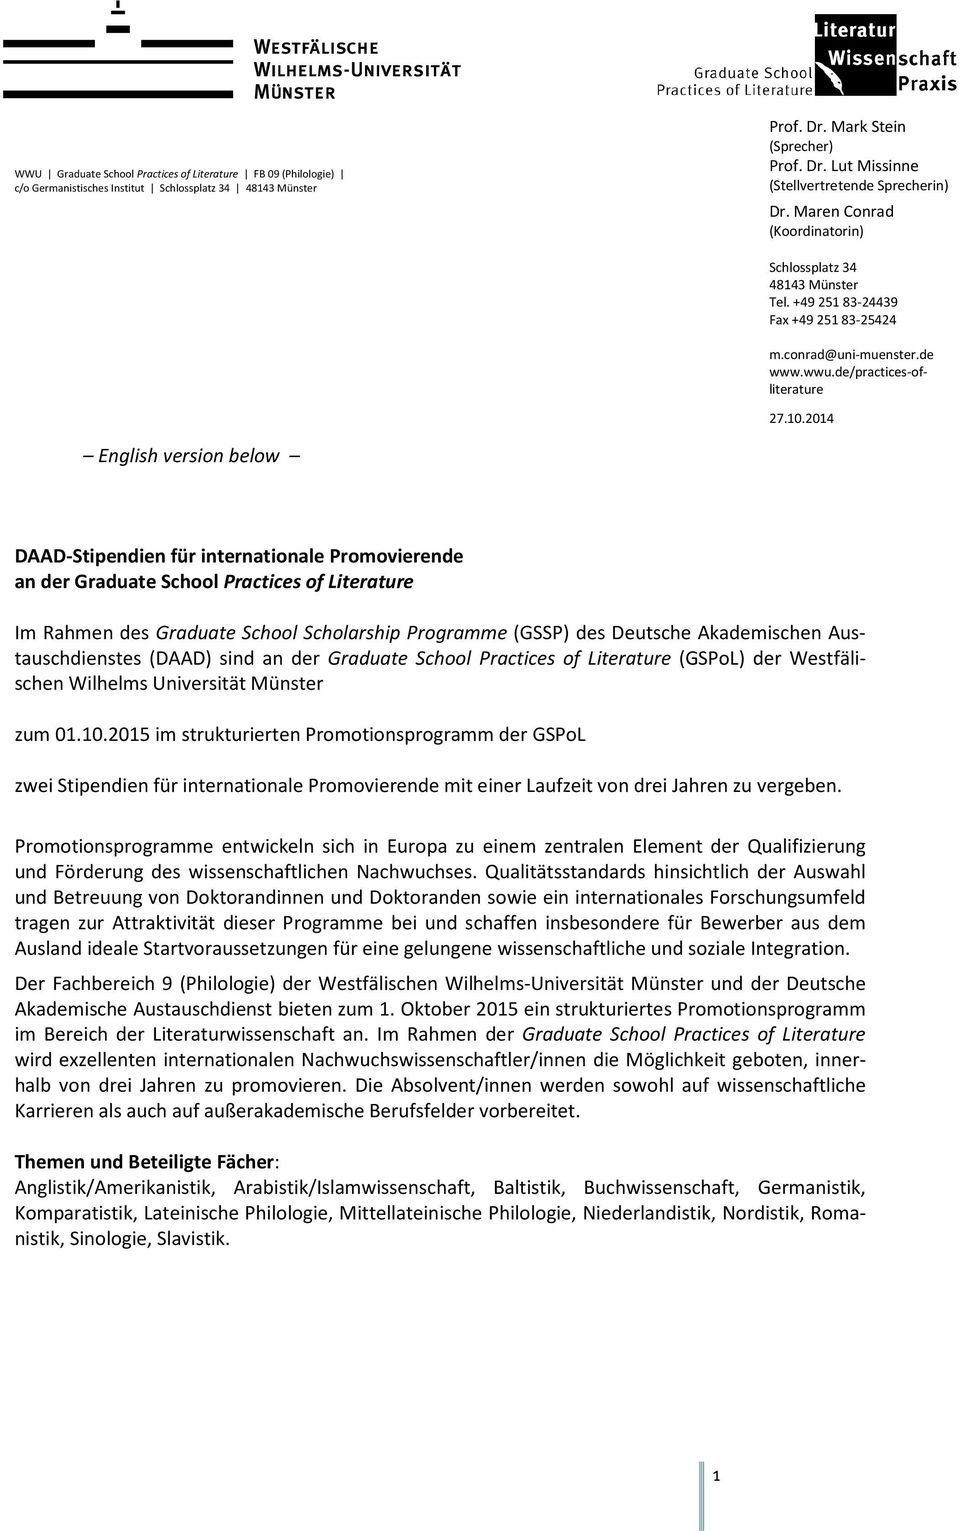 204 English version below DAAD-Stipendien für internationale Promovierende an der Graduate School Practices of Literature Im Rahmen des Graduate School Scholarship Programme (GSSP) des Deutsche